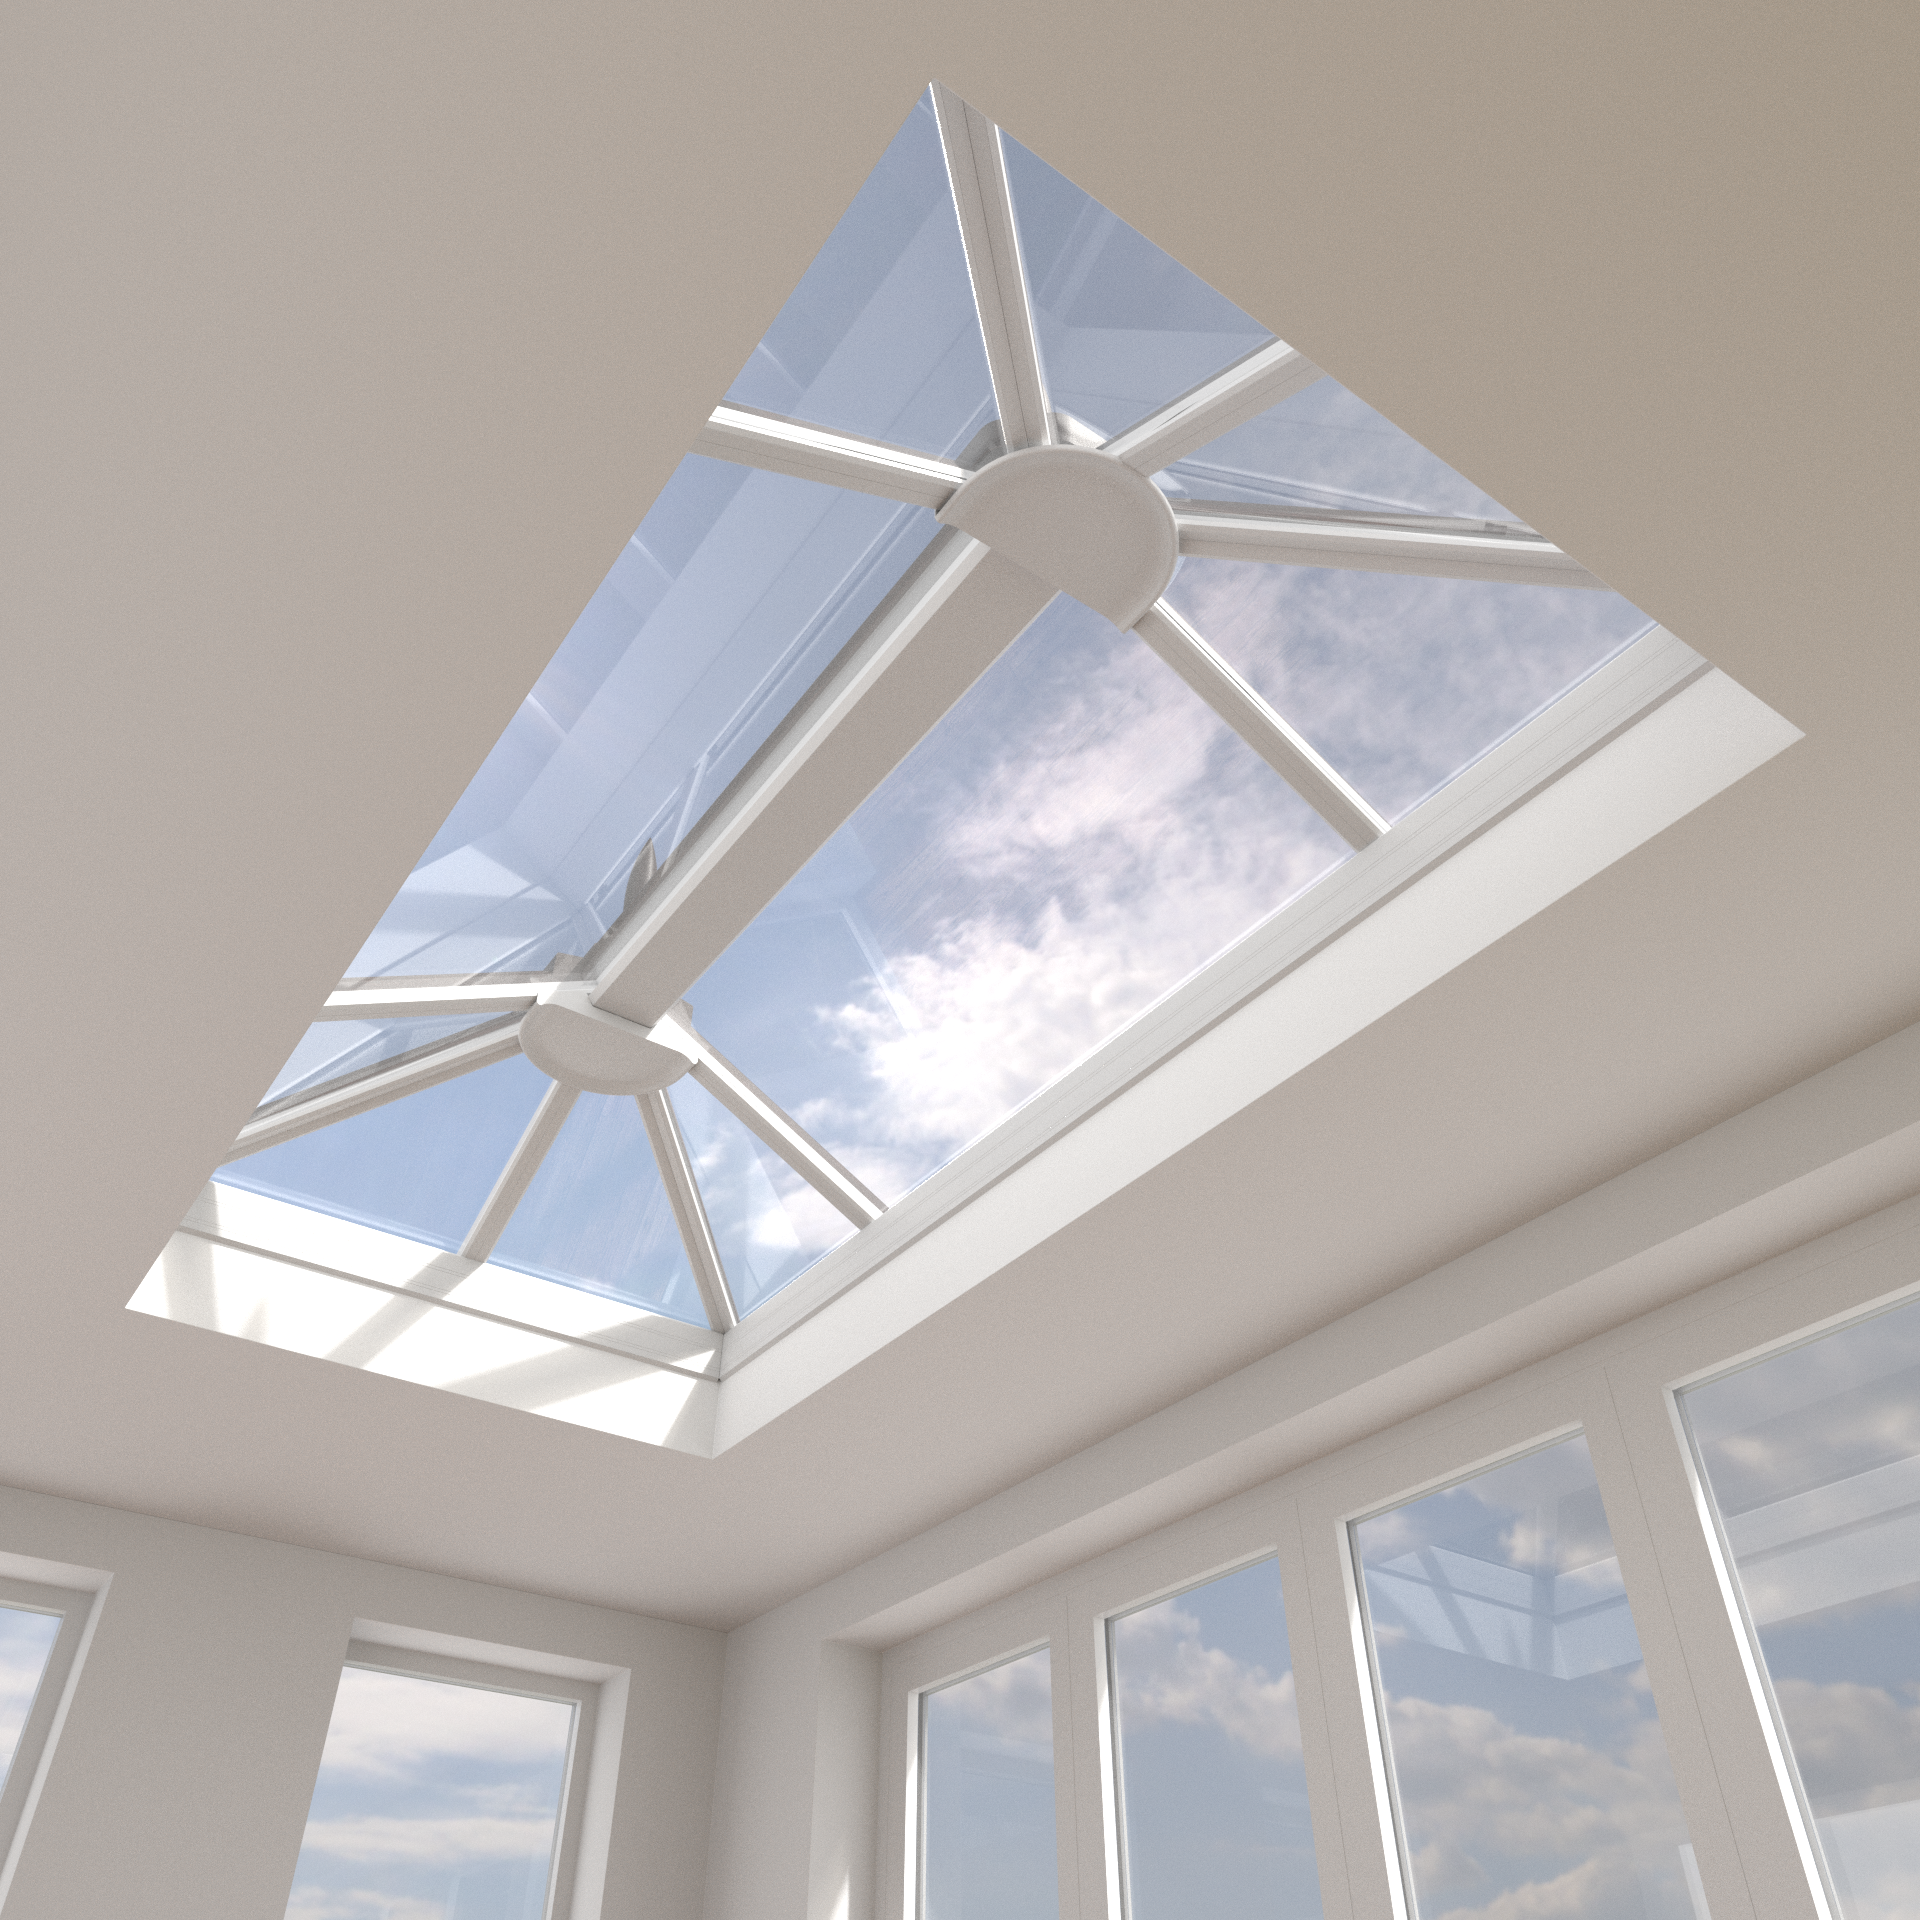 Online Aluminium Roof Lanterns Quote